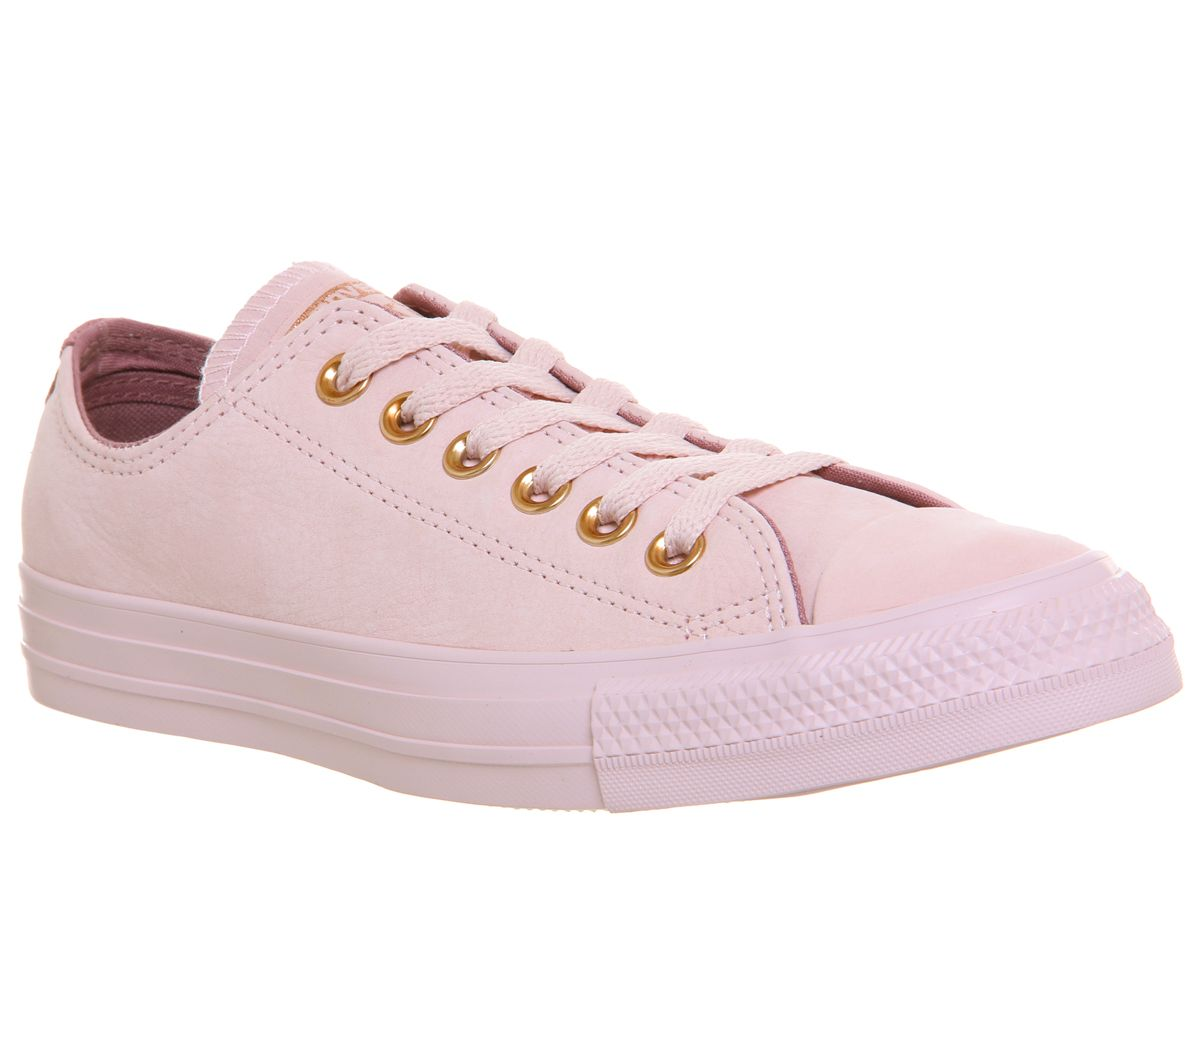 Converse All Star Low Leather Trainers, Rose